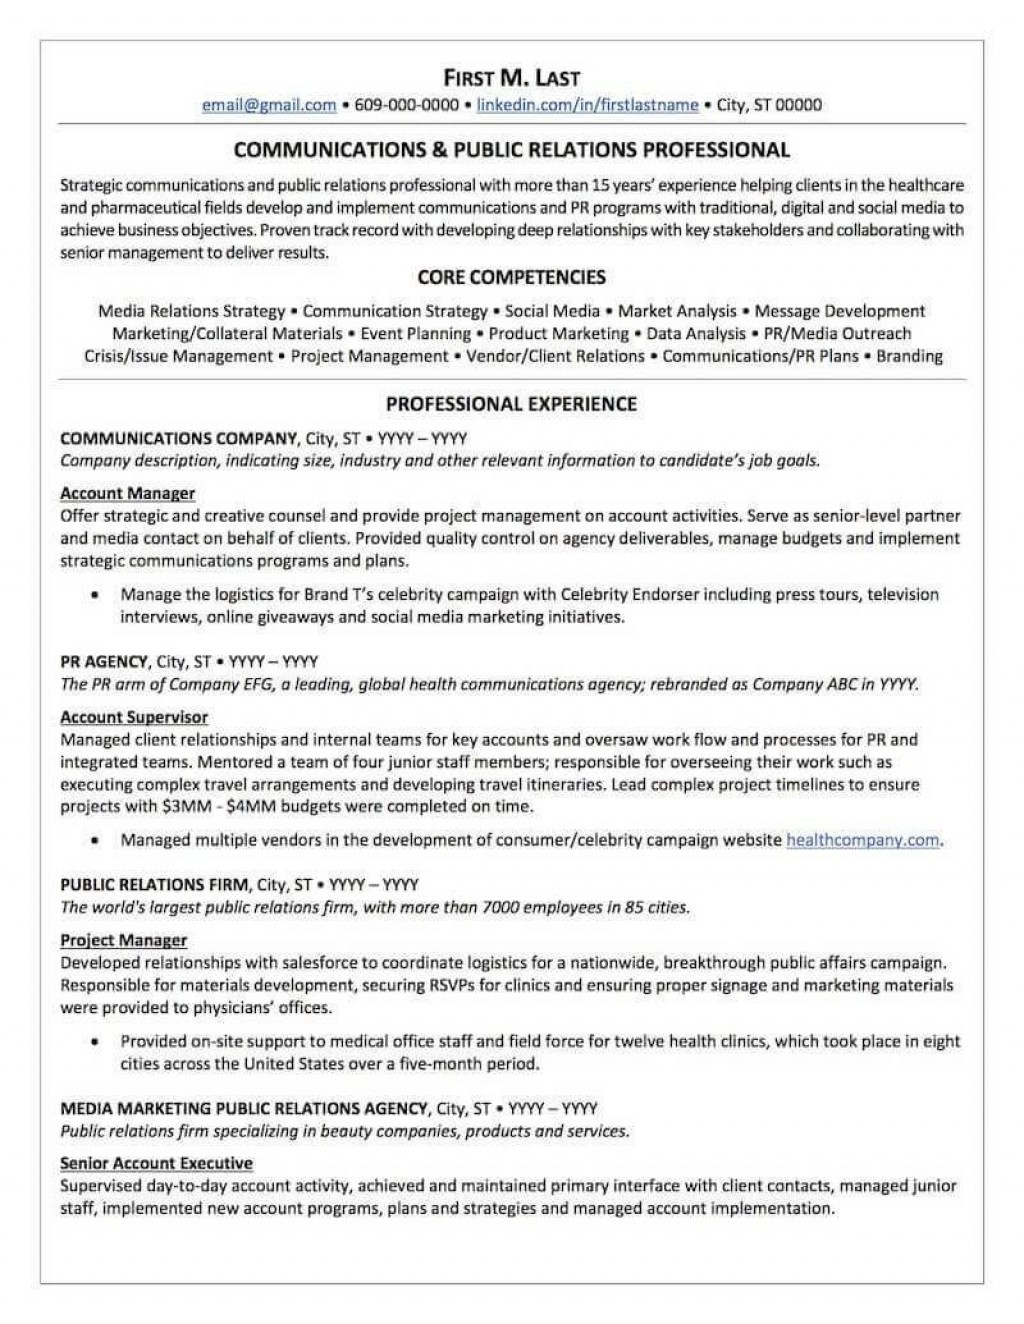 008 Exceptional Public Relation Strategy Plan Template Inspiration  ExampleLarge